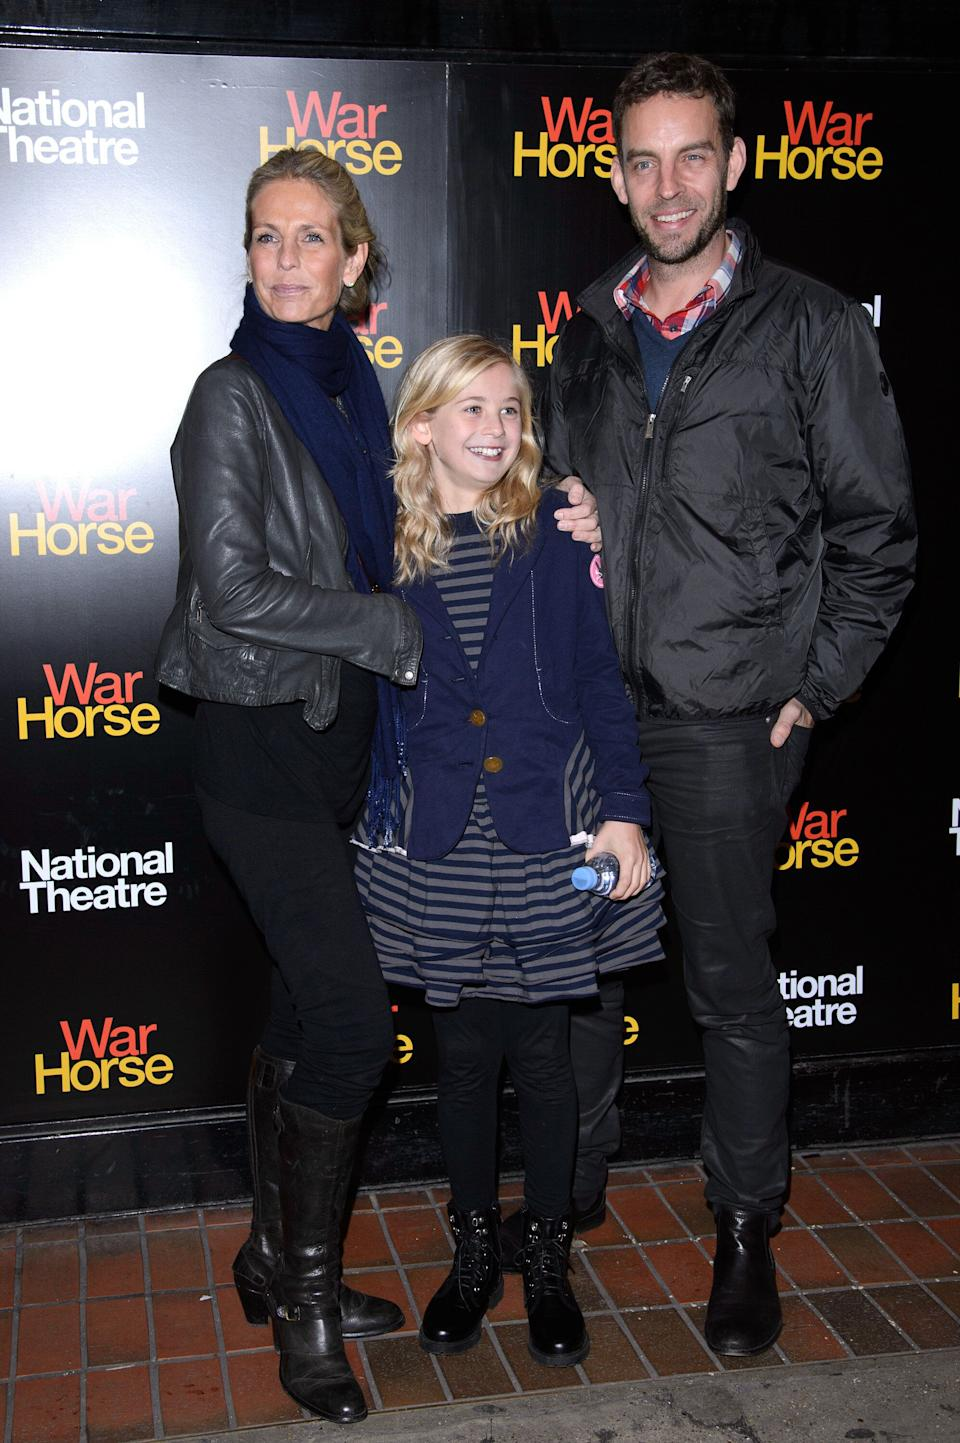 LONDON, ENGLAND - OCTOBER 25:  (L-R) Ulrika Jonsson and Brian Monet attends the 5th anniversary performance of 'War Horse' at The New London Theatre, Drury Lane on October 25, 2012 in London, England.  (Photo by Ben Pruchnie/Getty Images)